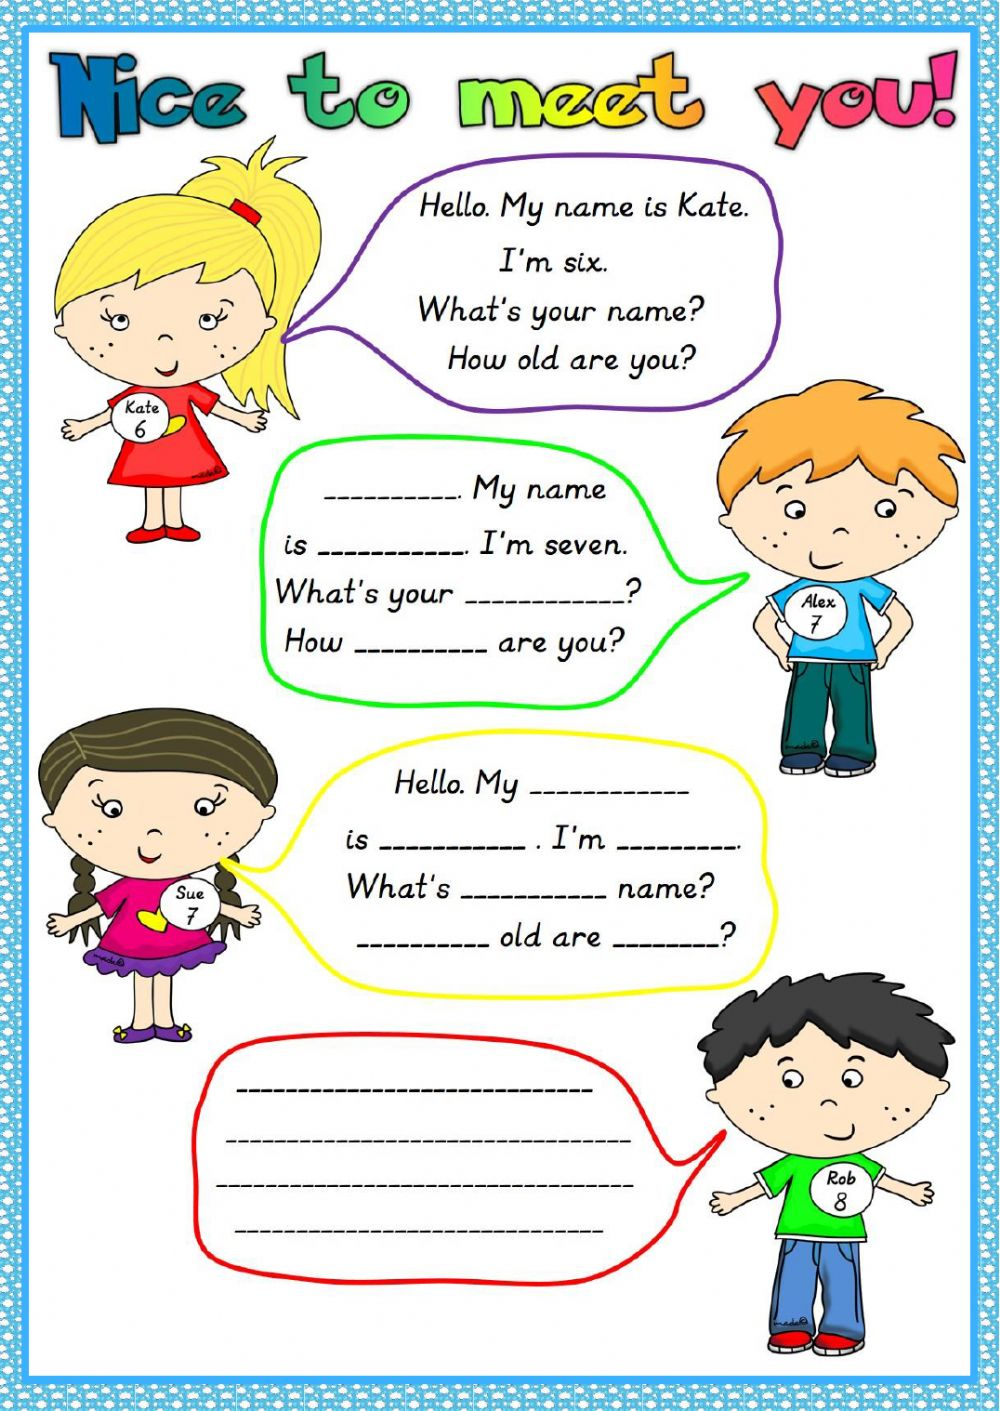 hight resolution of Nice to meet you worksheet